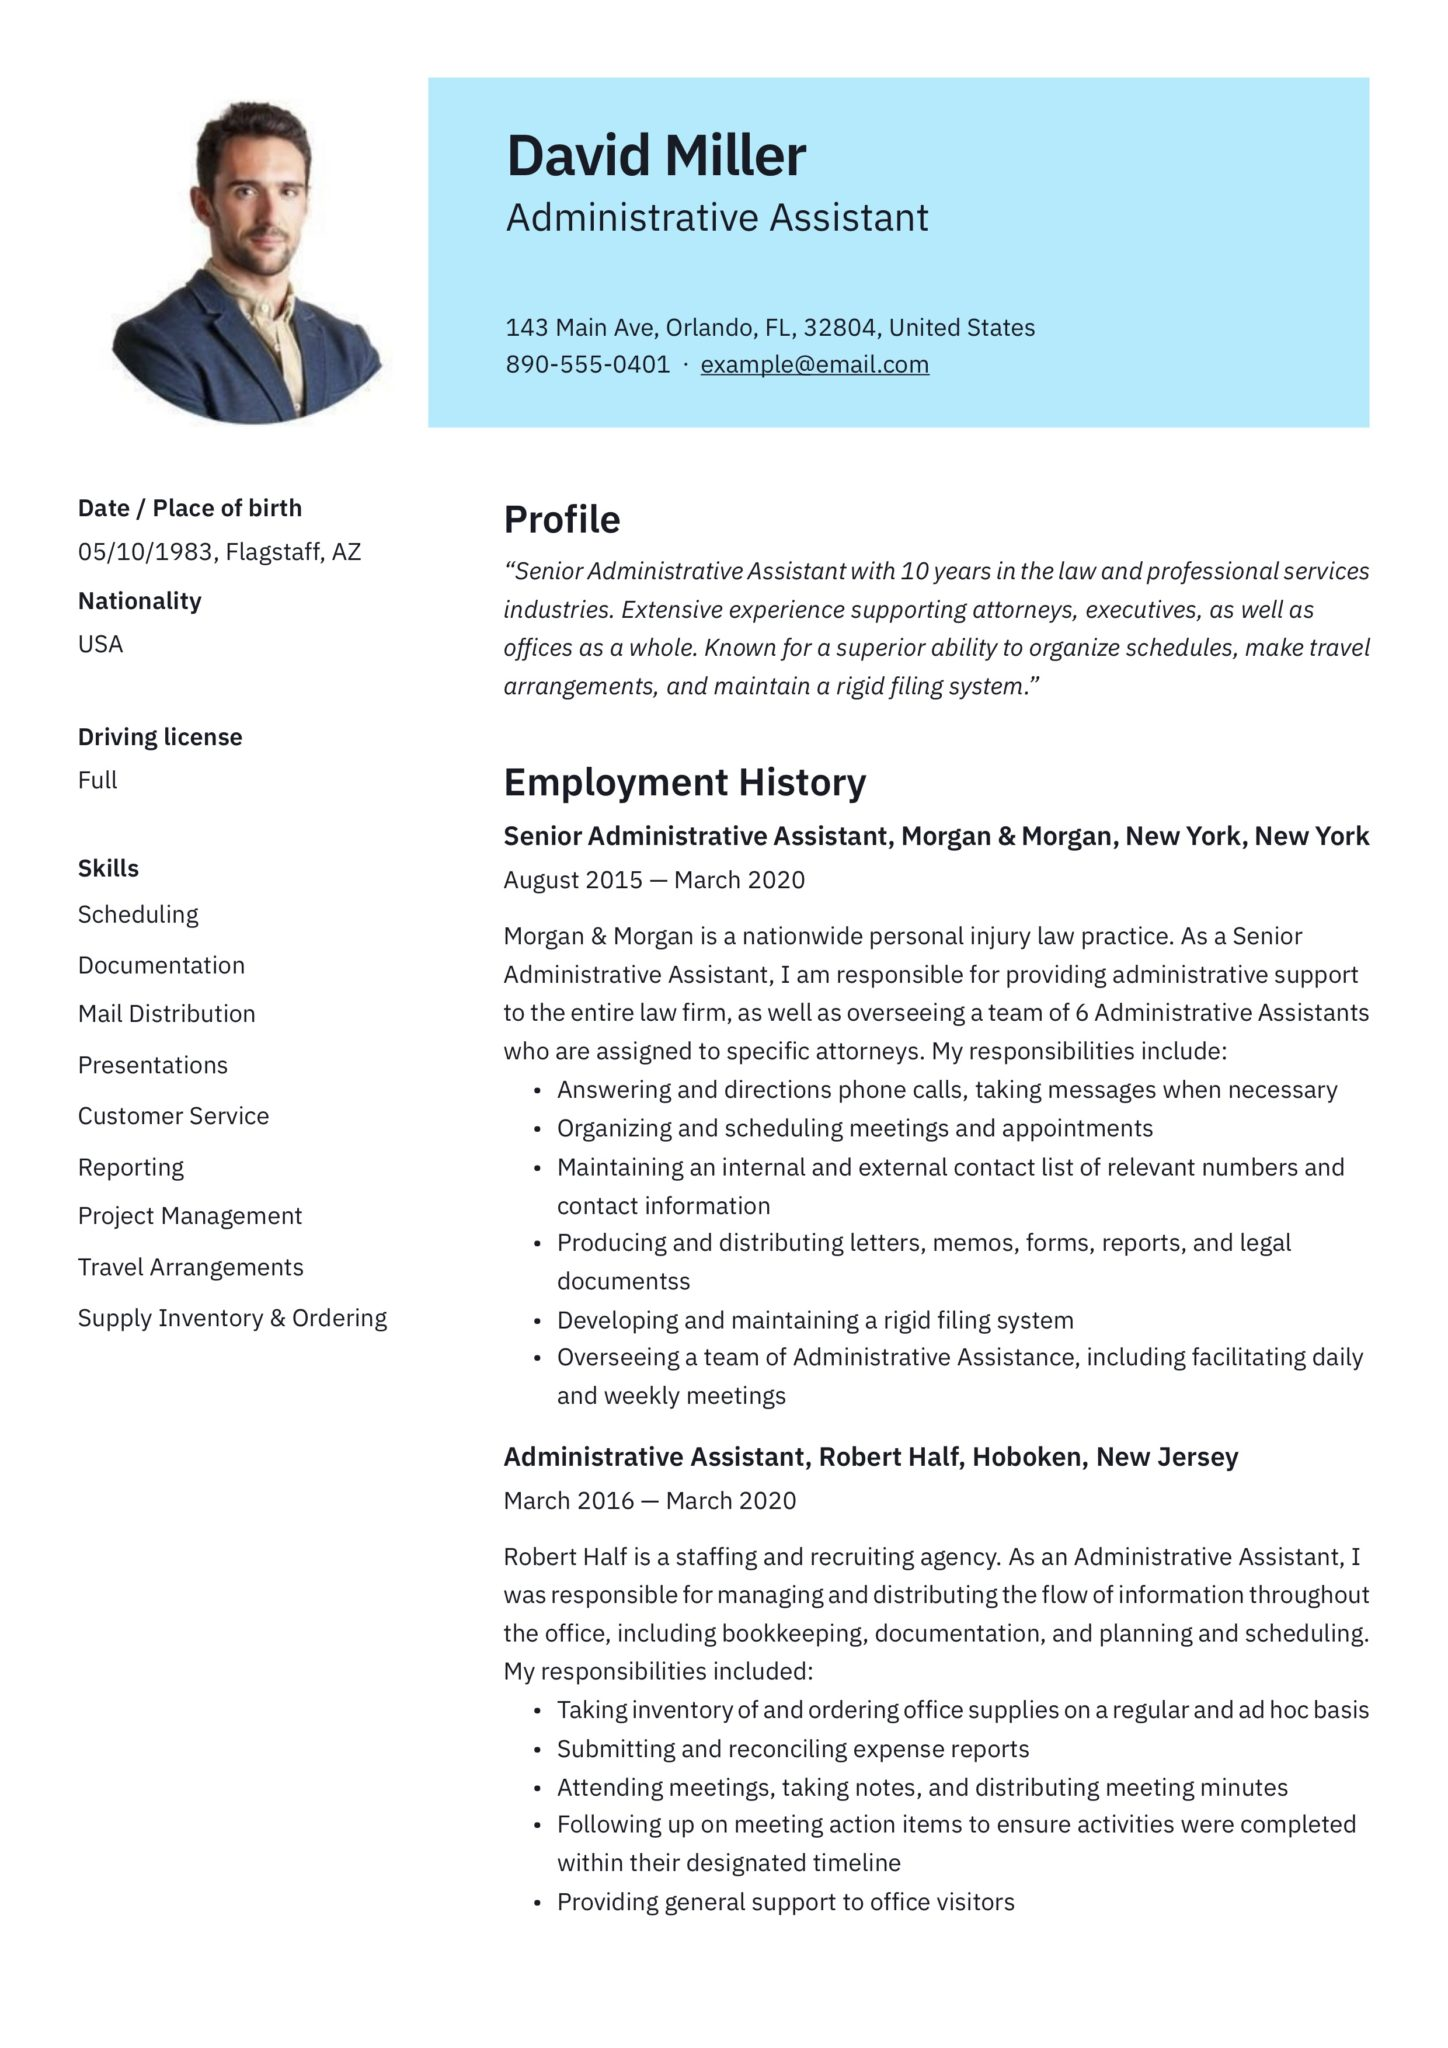 free administrative assistant resumes writing guide pdf resume scaled star technique Resume Administrative Assistant Resume 2020